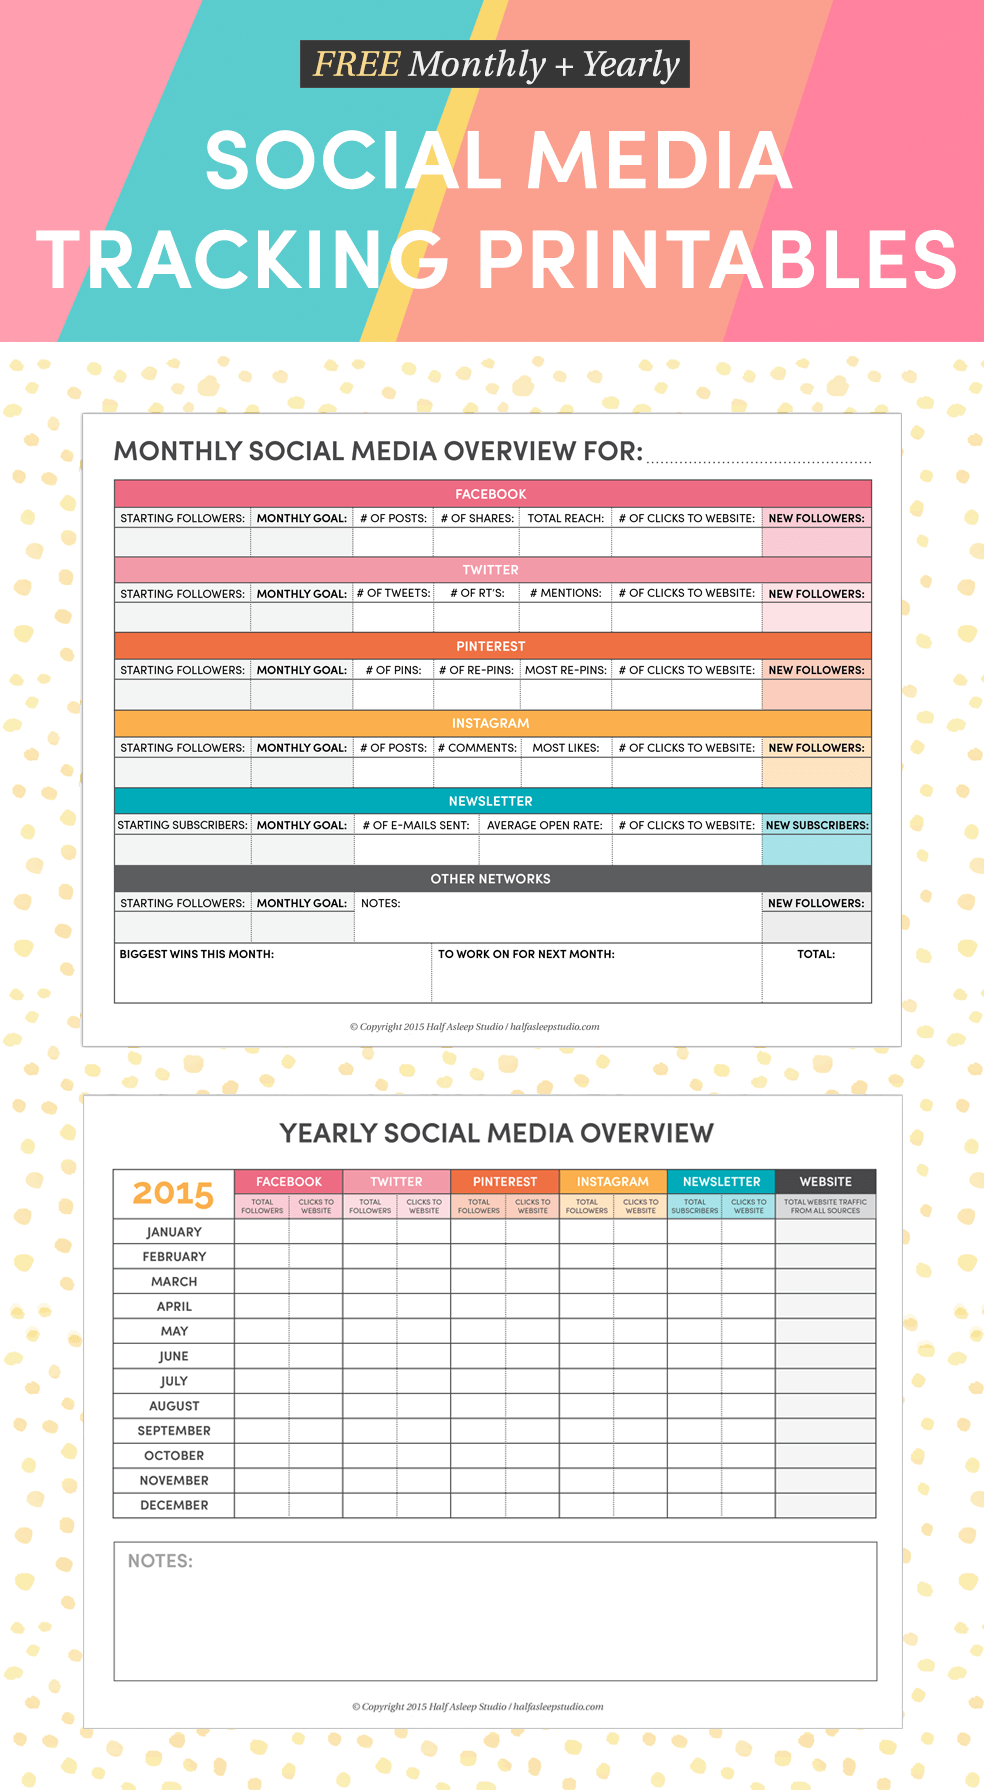 FREE Monthly and Yearly Social Media Tracking Printables to